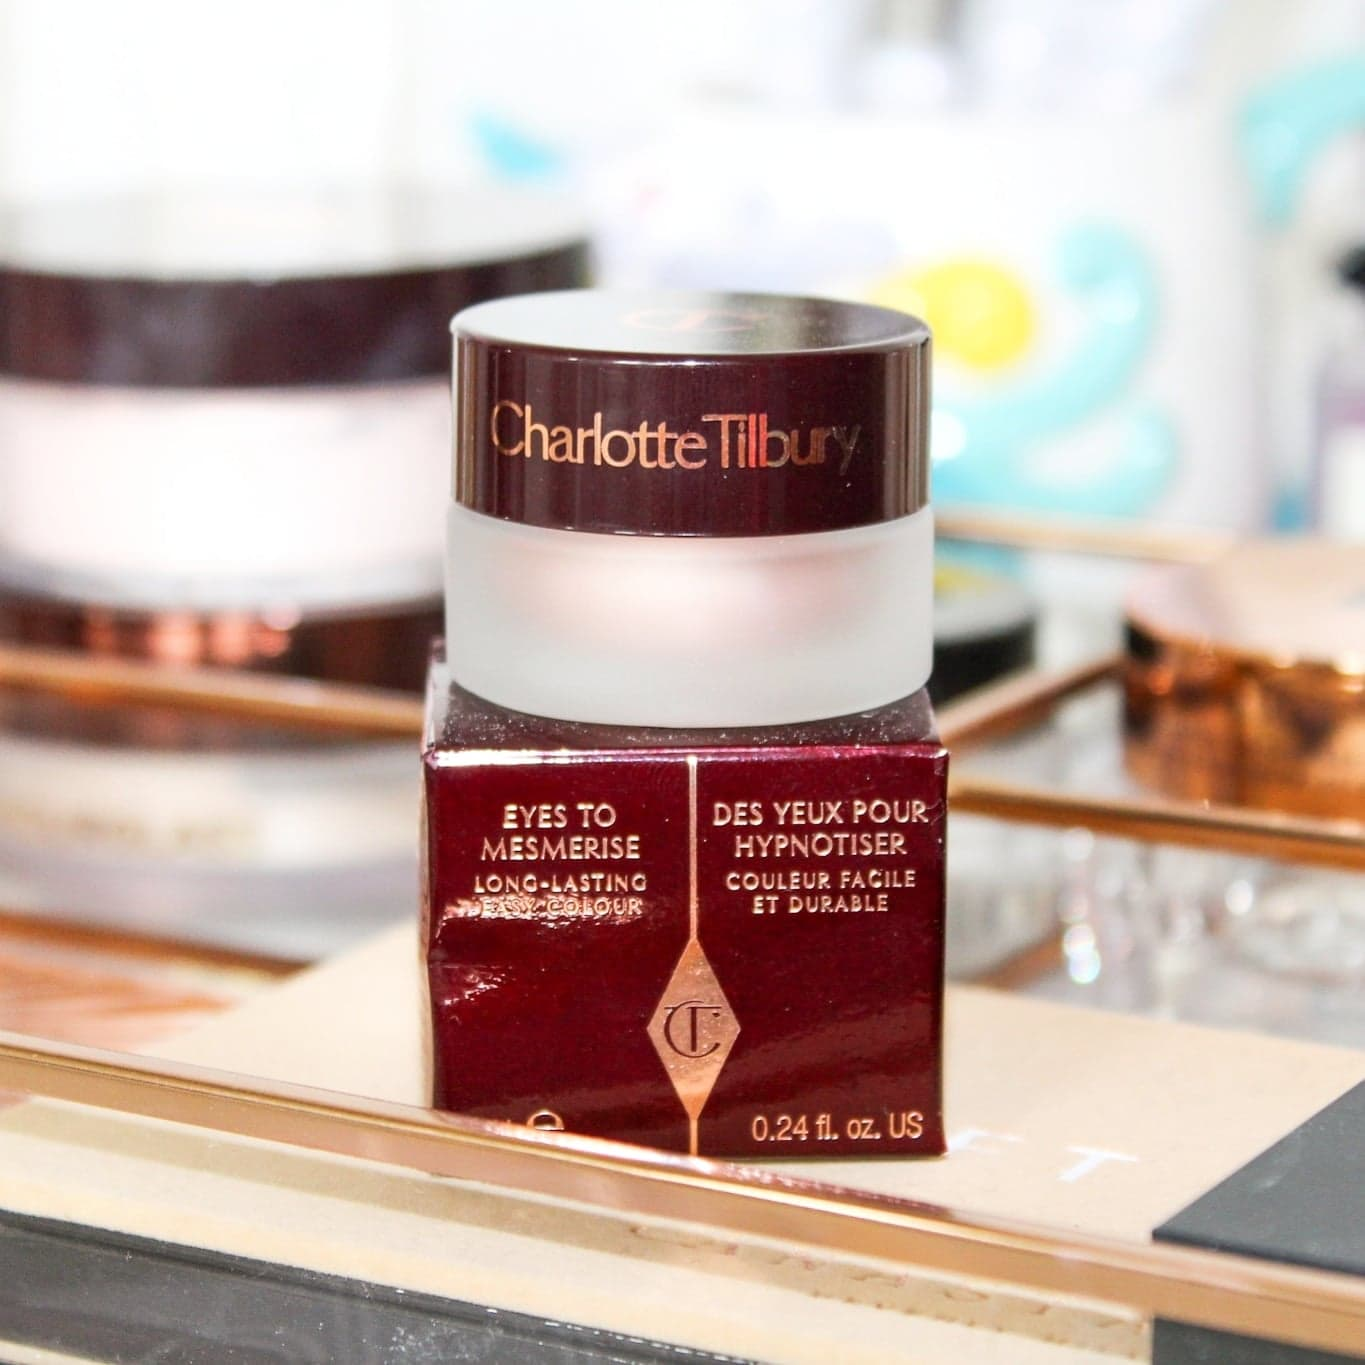 Charlotte Tilbury Eyes to Mesmerise Long-Lasting Cream Eyeshadow